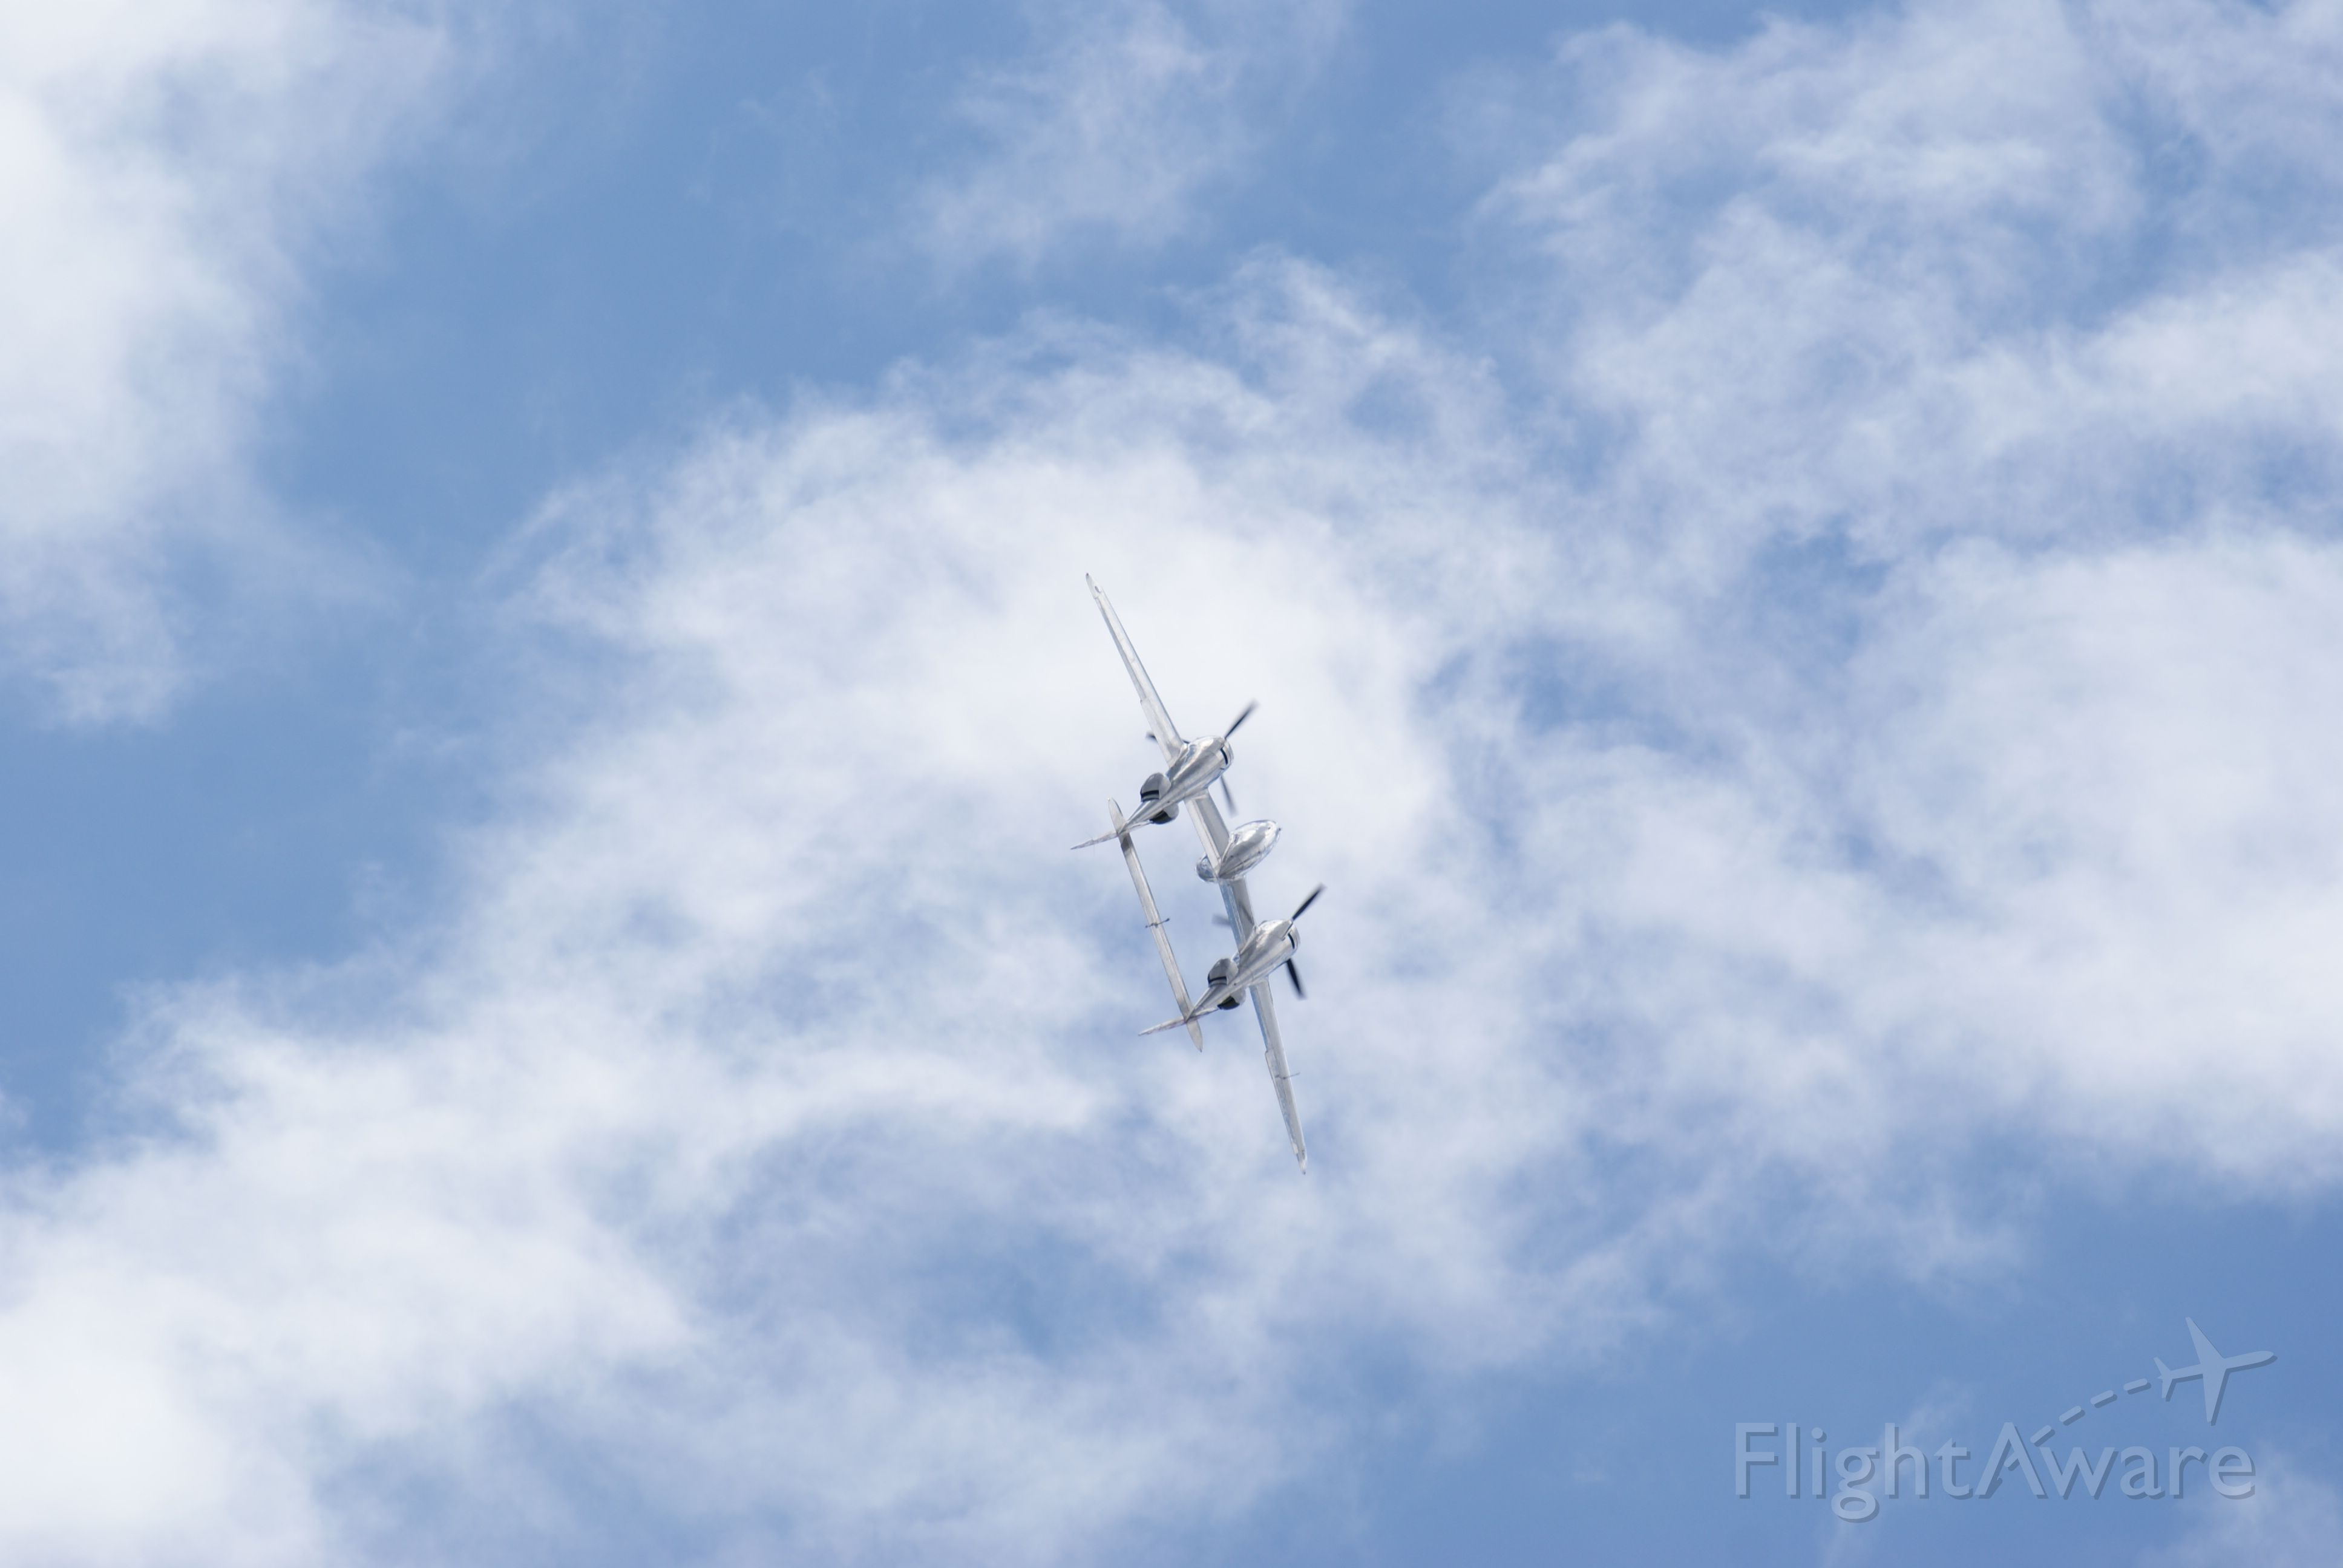 Lockheed P-38 Lightning (N25Y) - The Red Bull Lightning part way thru the barrel roll at Duxford Flying Legends airshow July 12